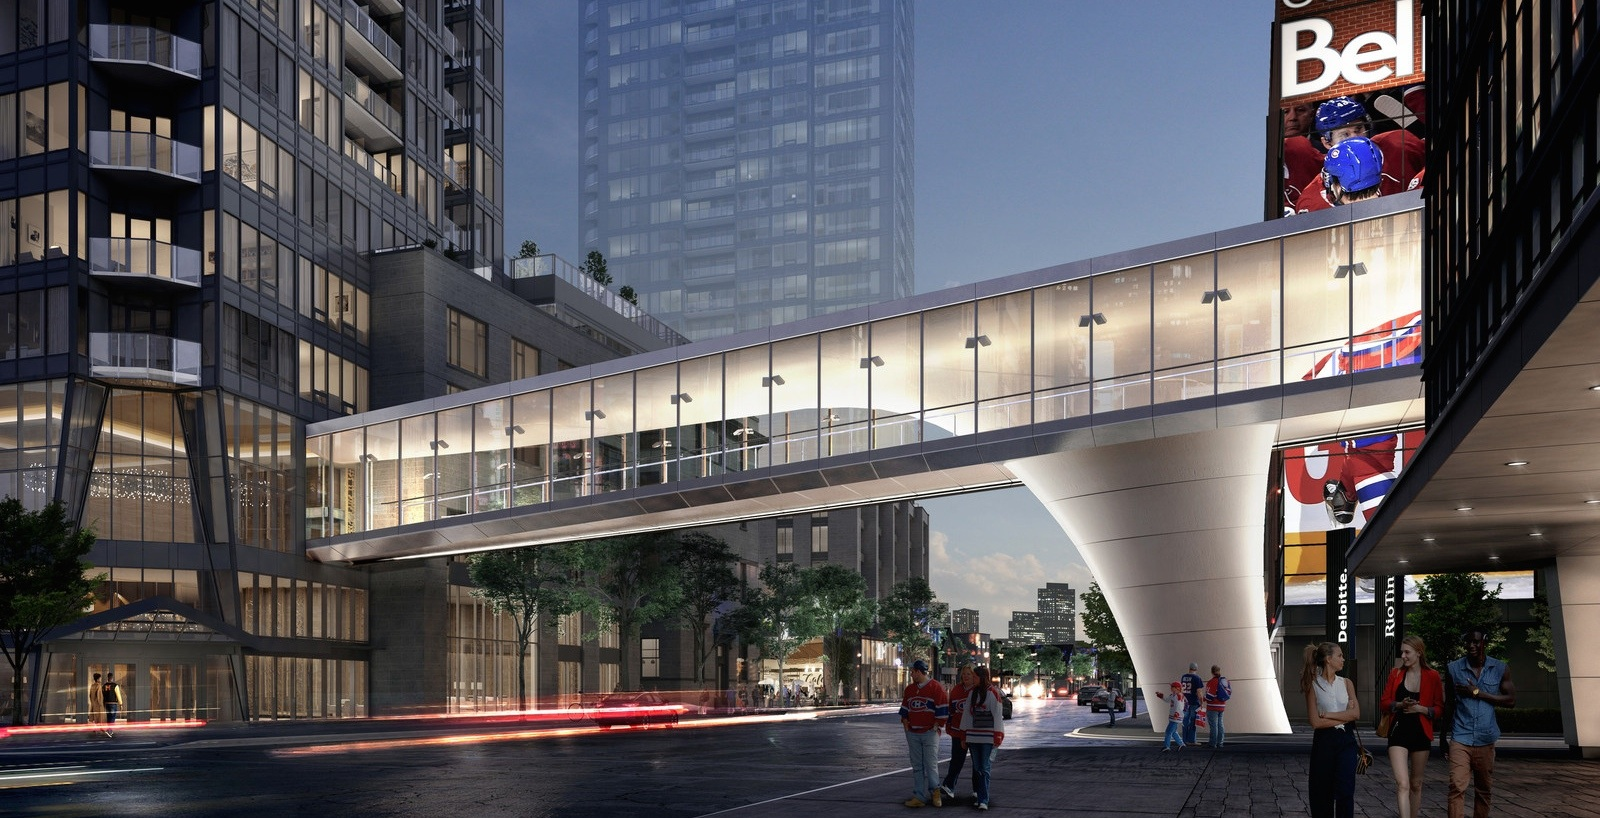 Plan revealed to connect Tour des Canadiens to Bell Centre with stunning skybridge